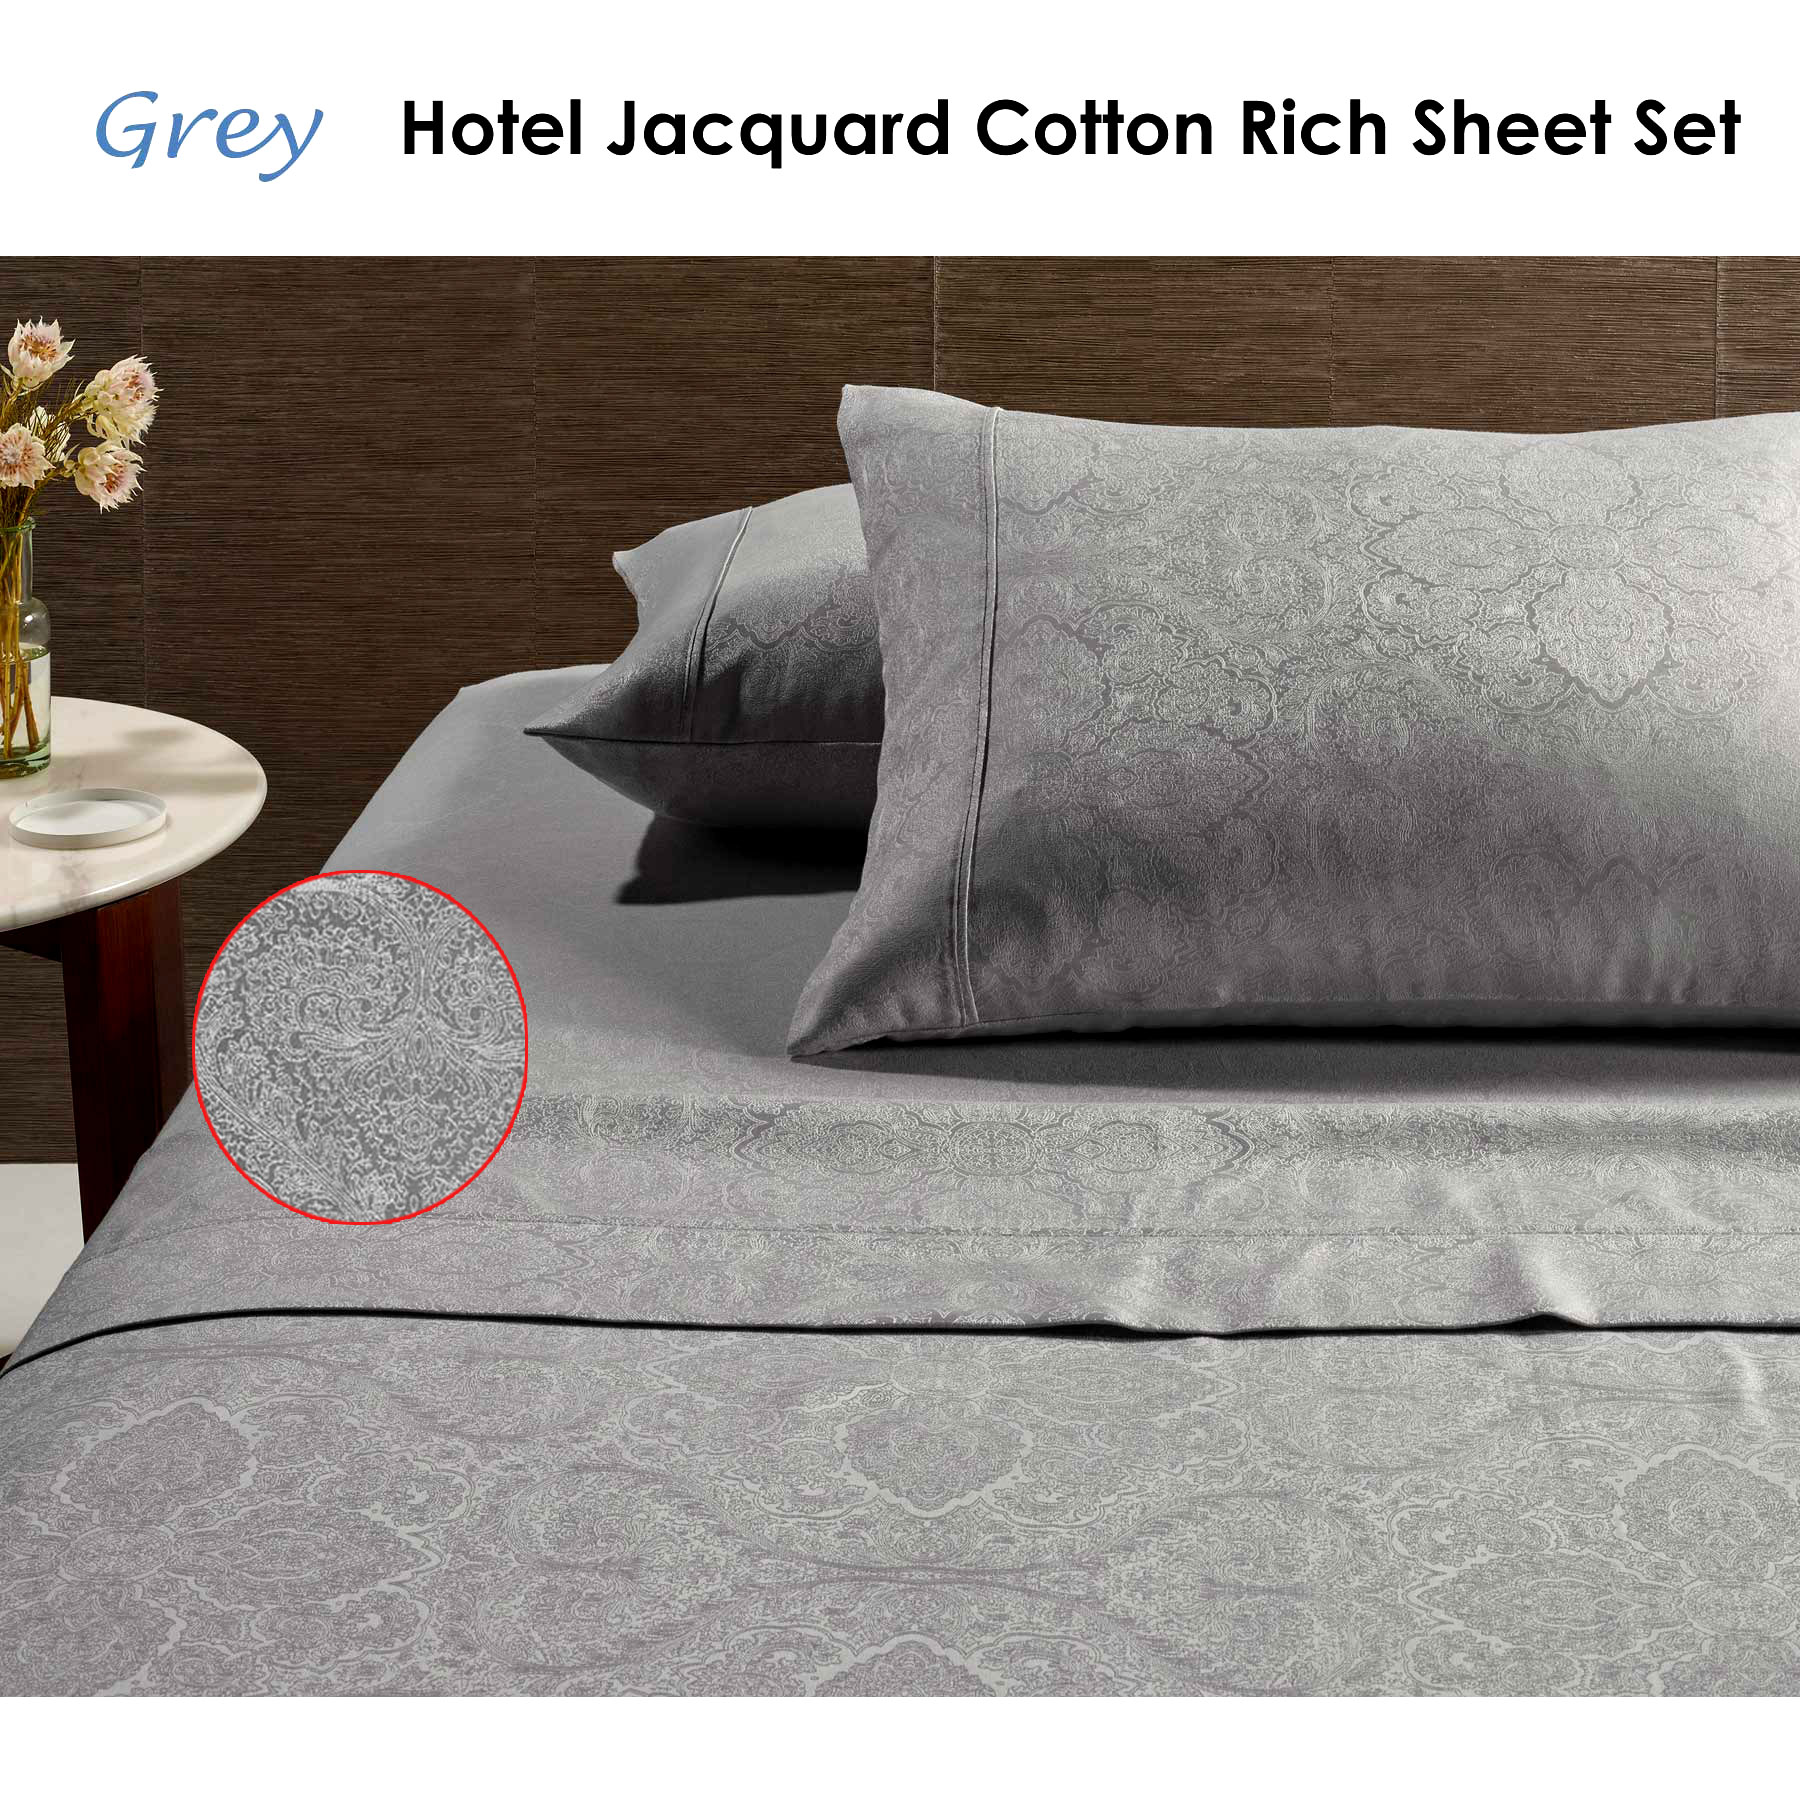 HOTEL 2000TC Cotton Rich Fitted Flat Sheet Set Pillowcases DOUBLE QUEEN KING